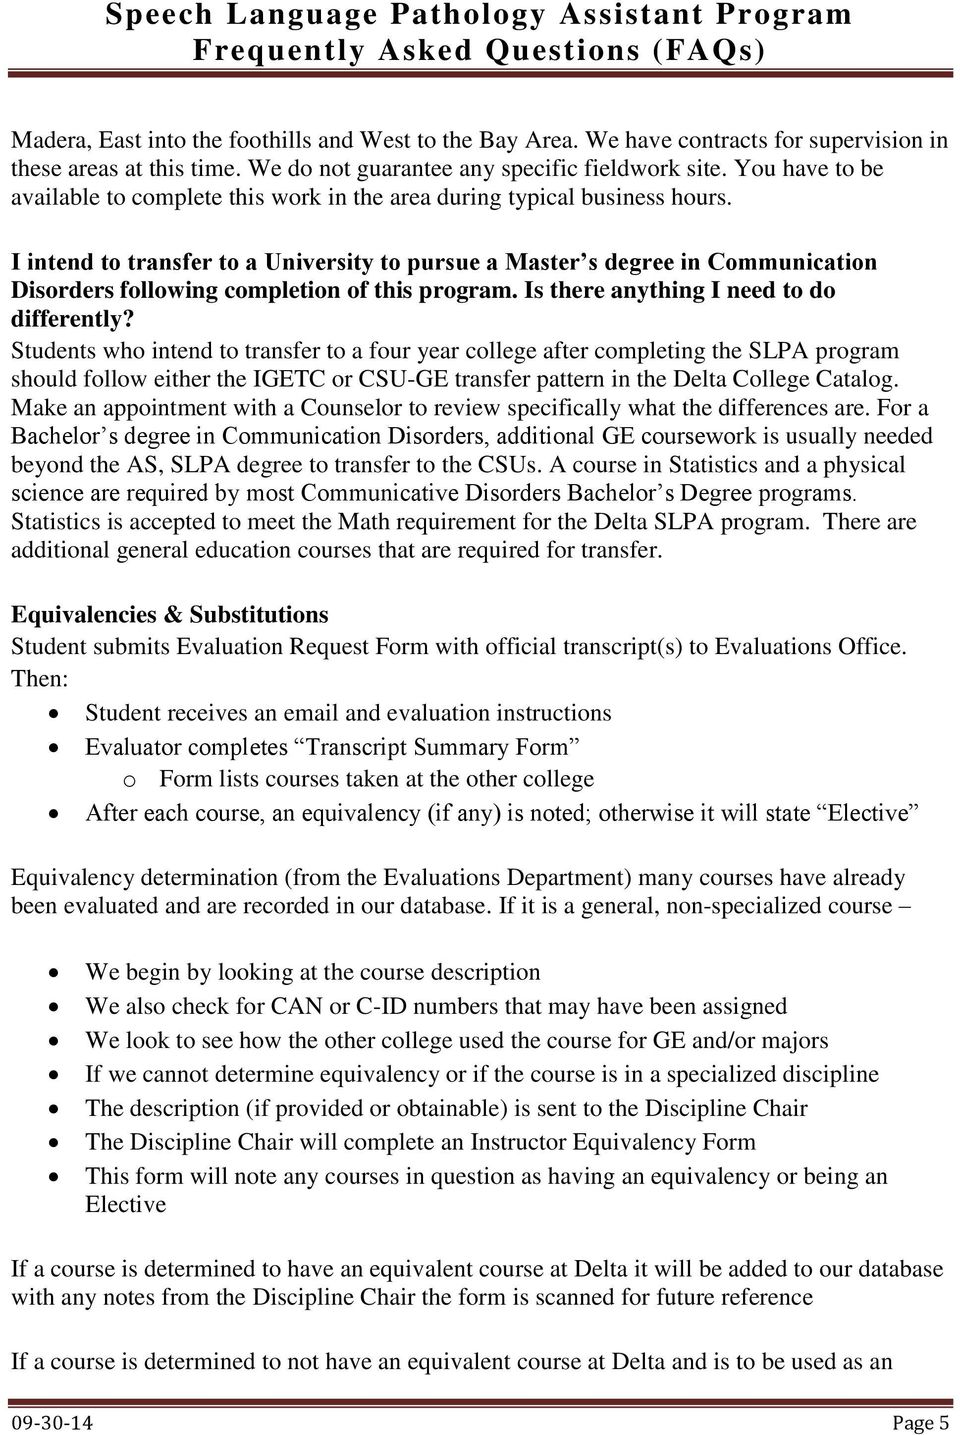 I intend to transfer to a University to pursue a Master s degree in Communication Disorders following completion of this program. Is there anything I need to do differently?